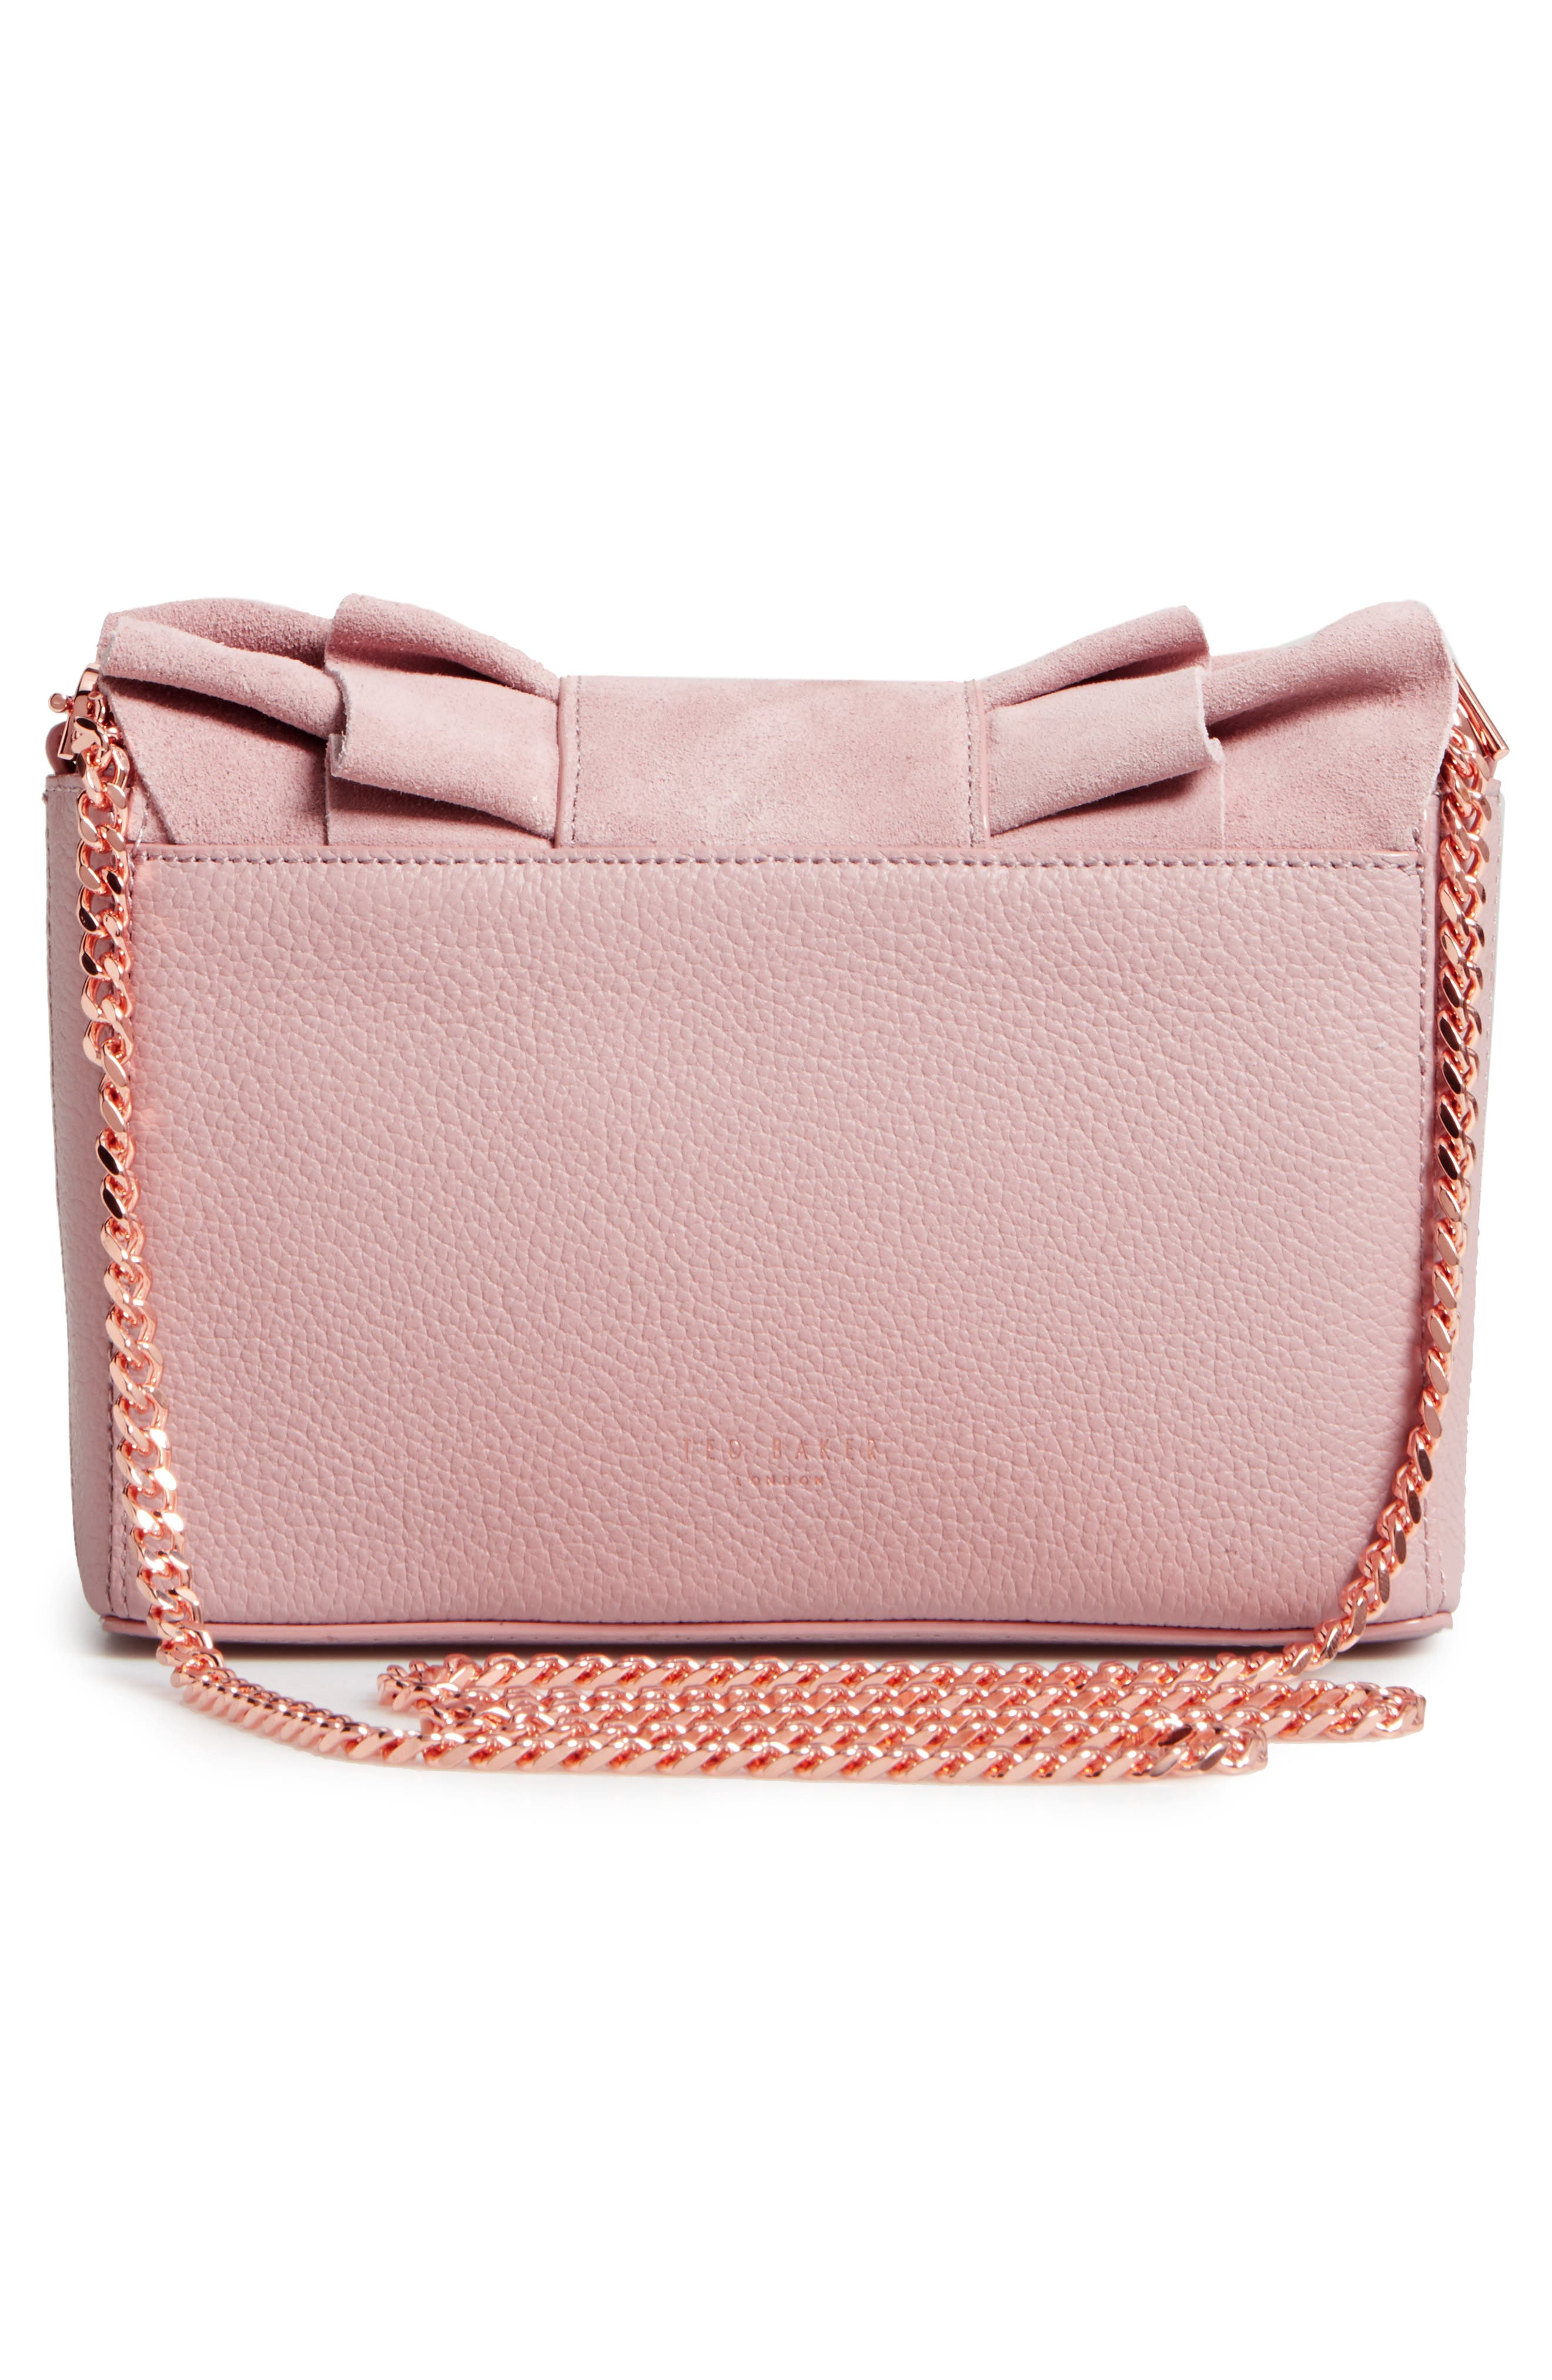 Nerinee Bow Buckle Clutch,                             Alternate thumbnail 9, color,